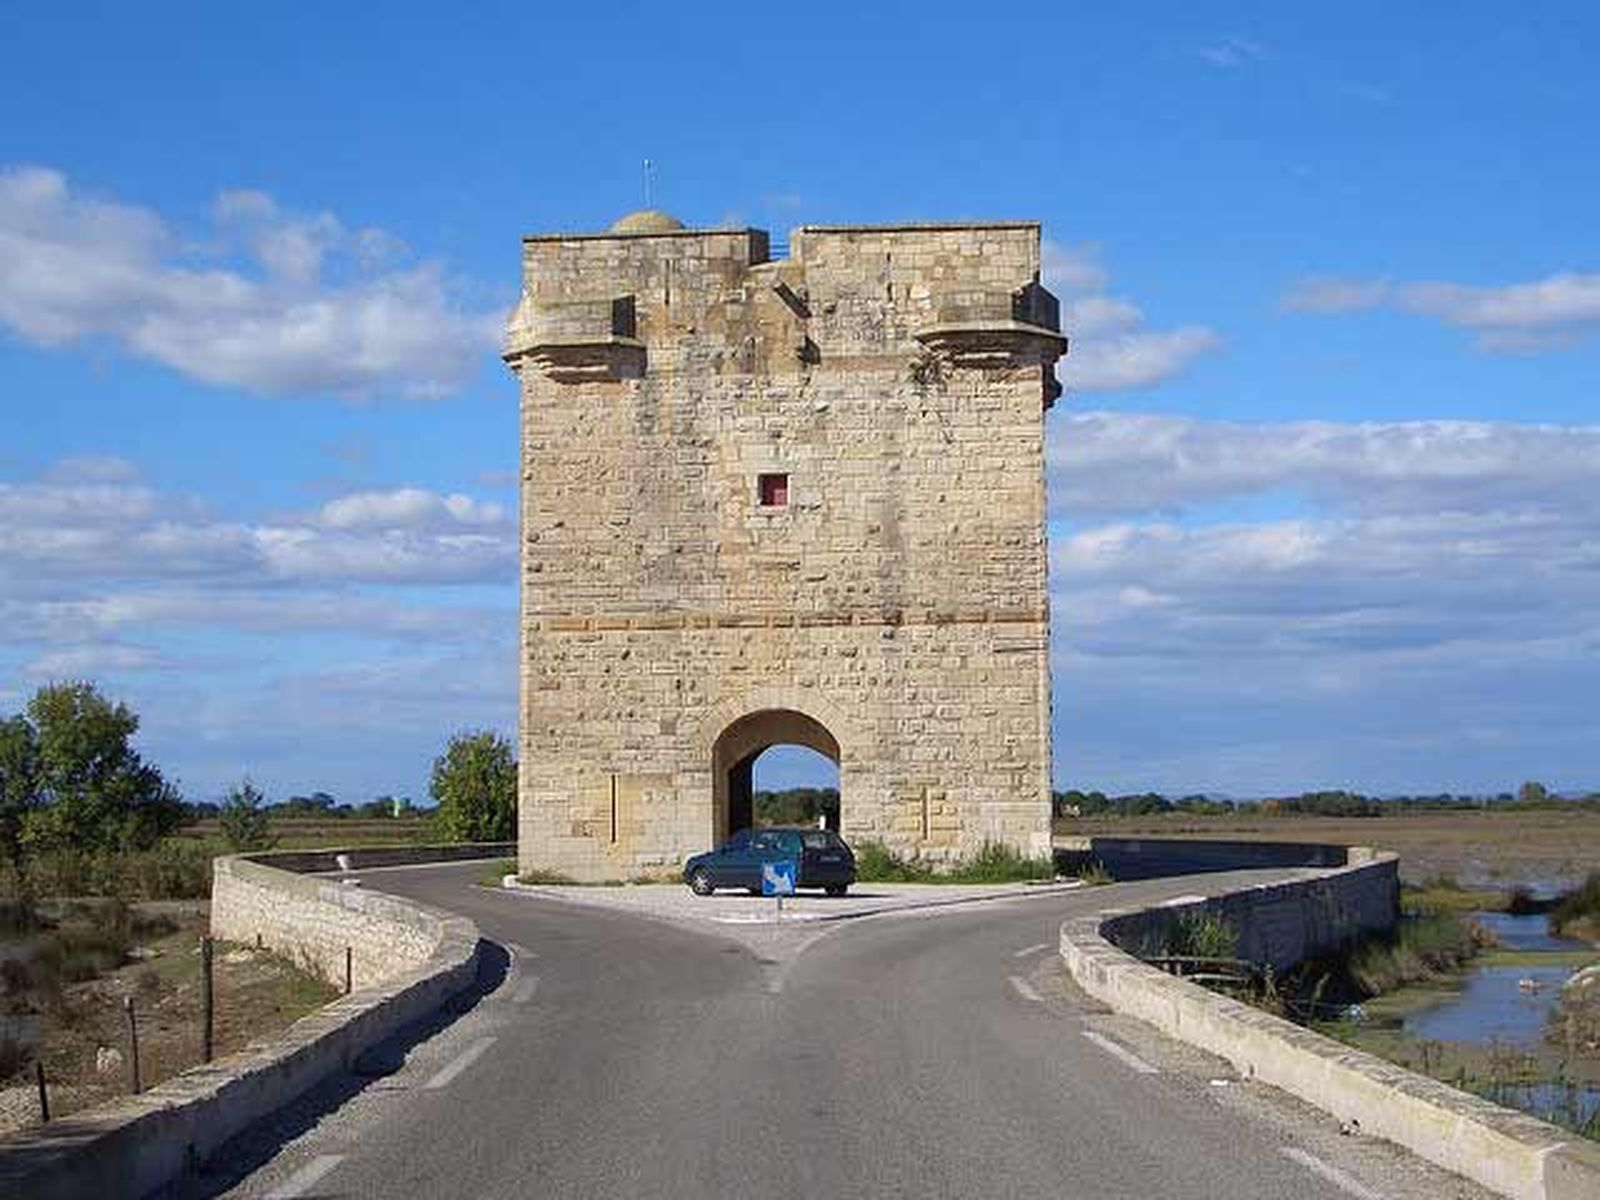 Tour la Carbonniere près d'Aigues-Mortes-